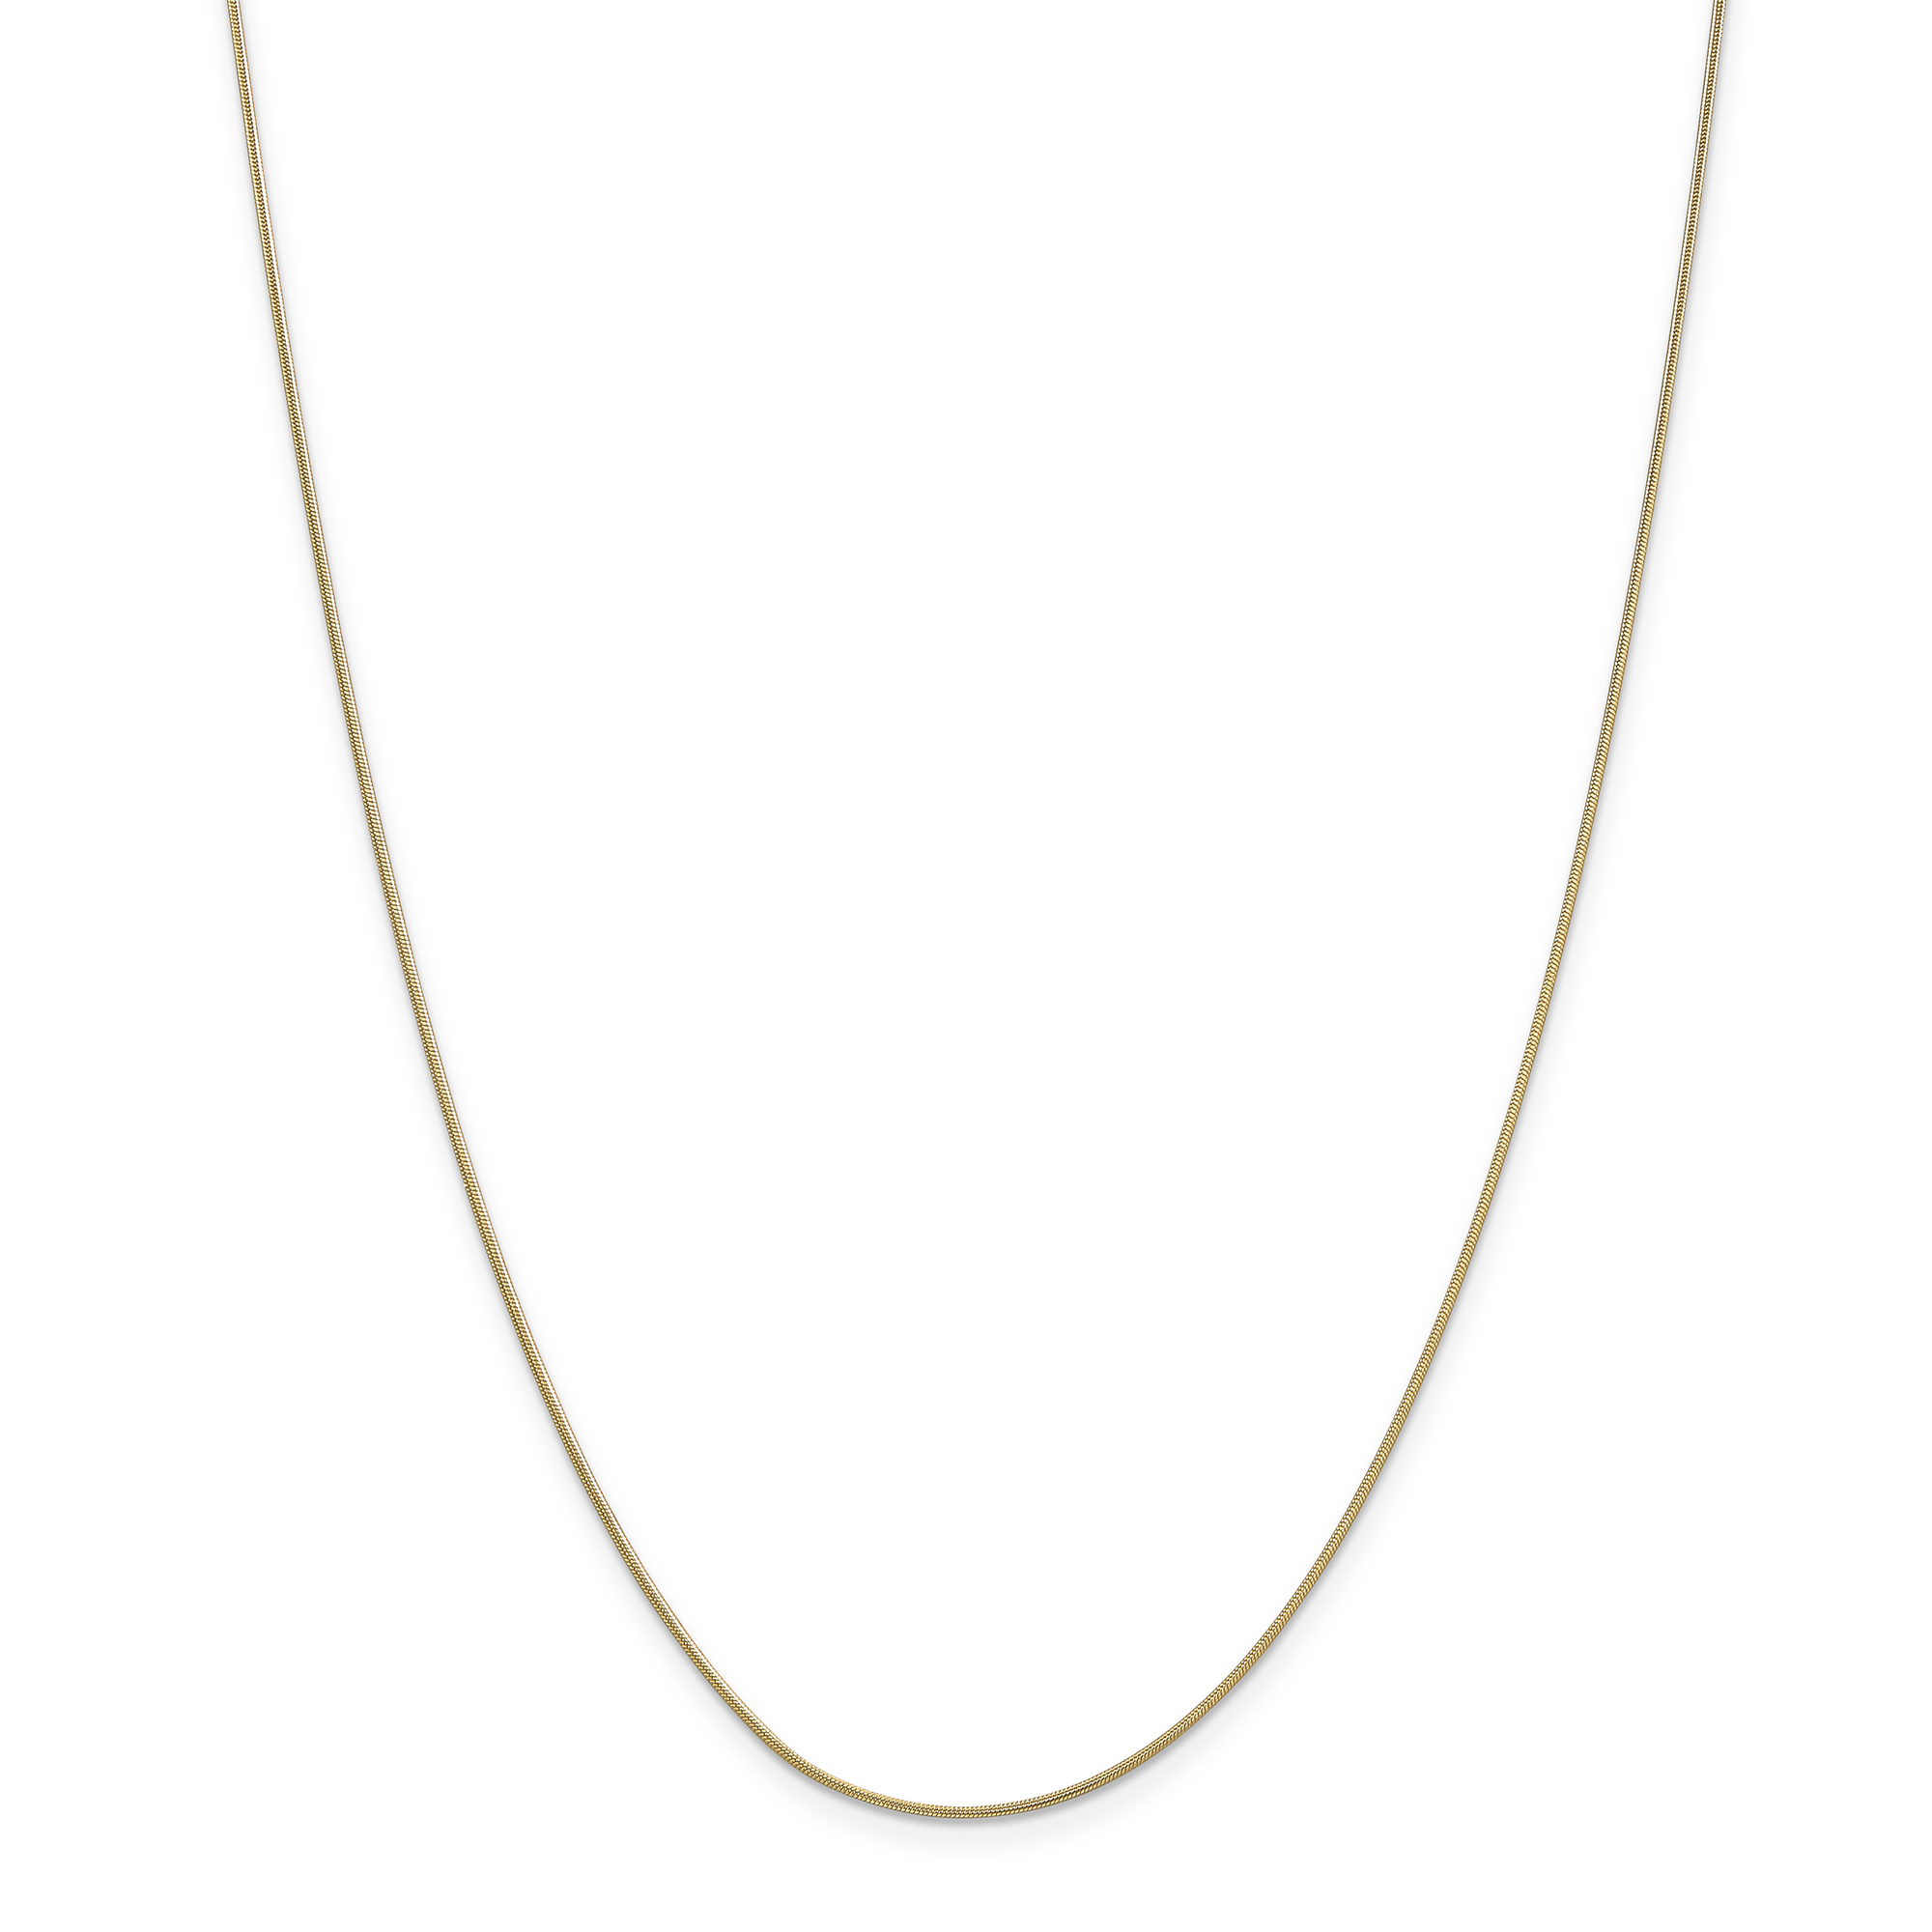 ICE CARATS 14kt Yellow Gold .90mm Round Snake Chain Necklace 30 Inch Pendant Charm Fine Jewelry Ideal Gifts For Women... by IceCarats Designer Jewelry Gift USA